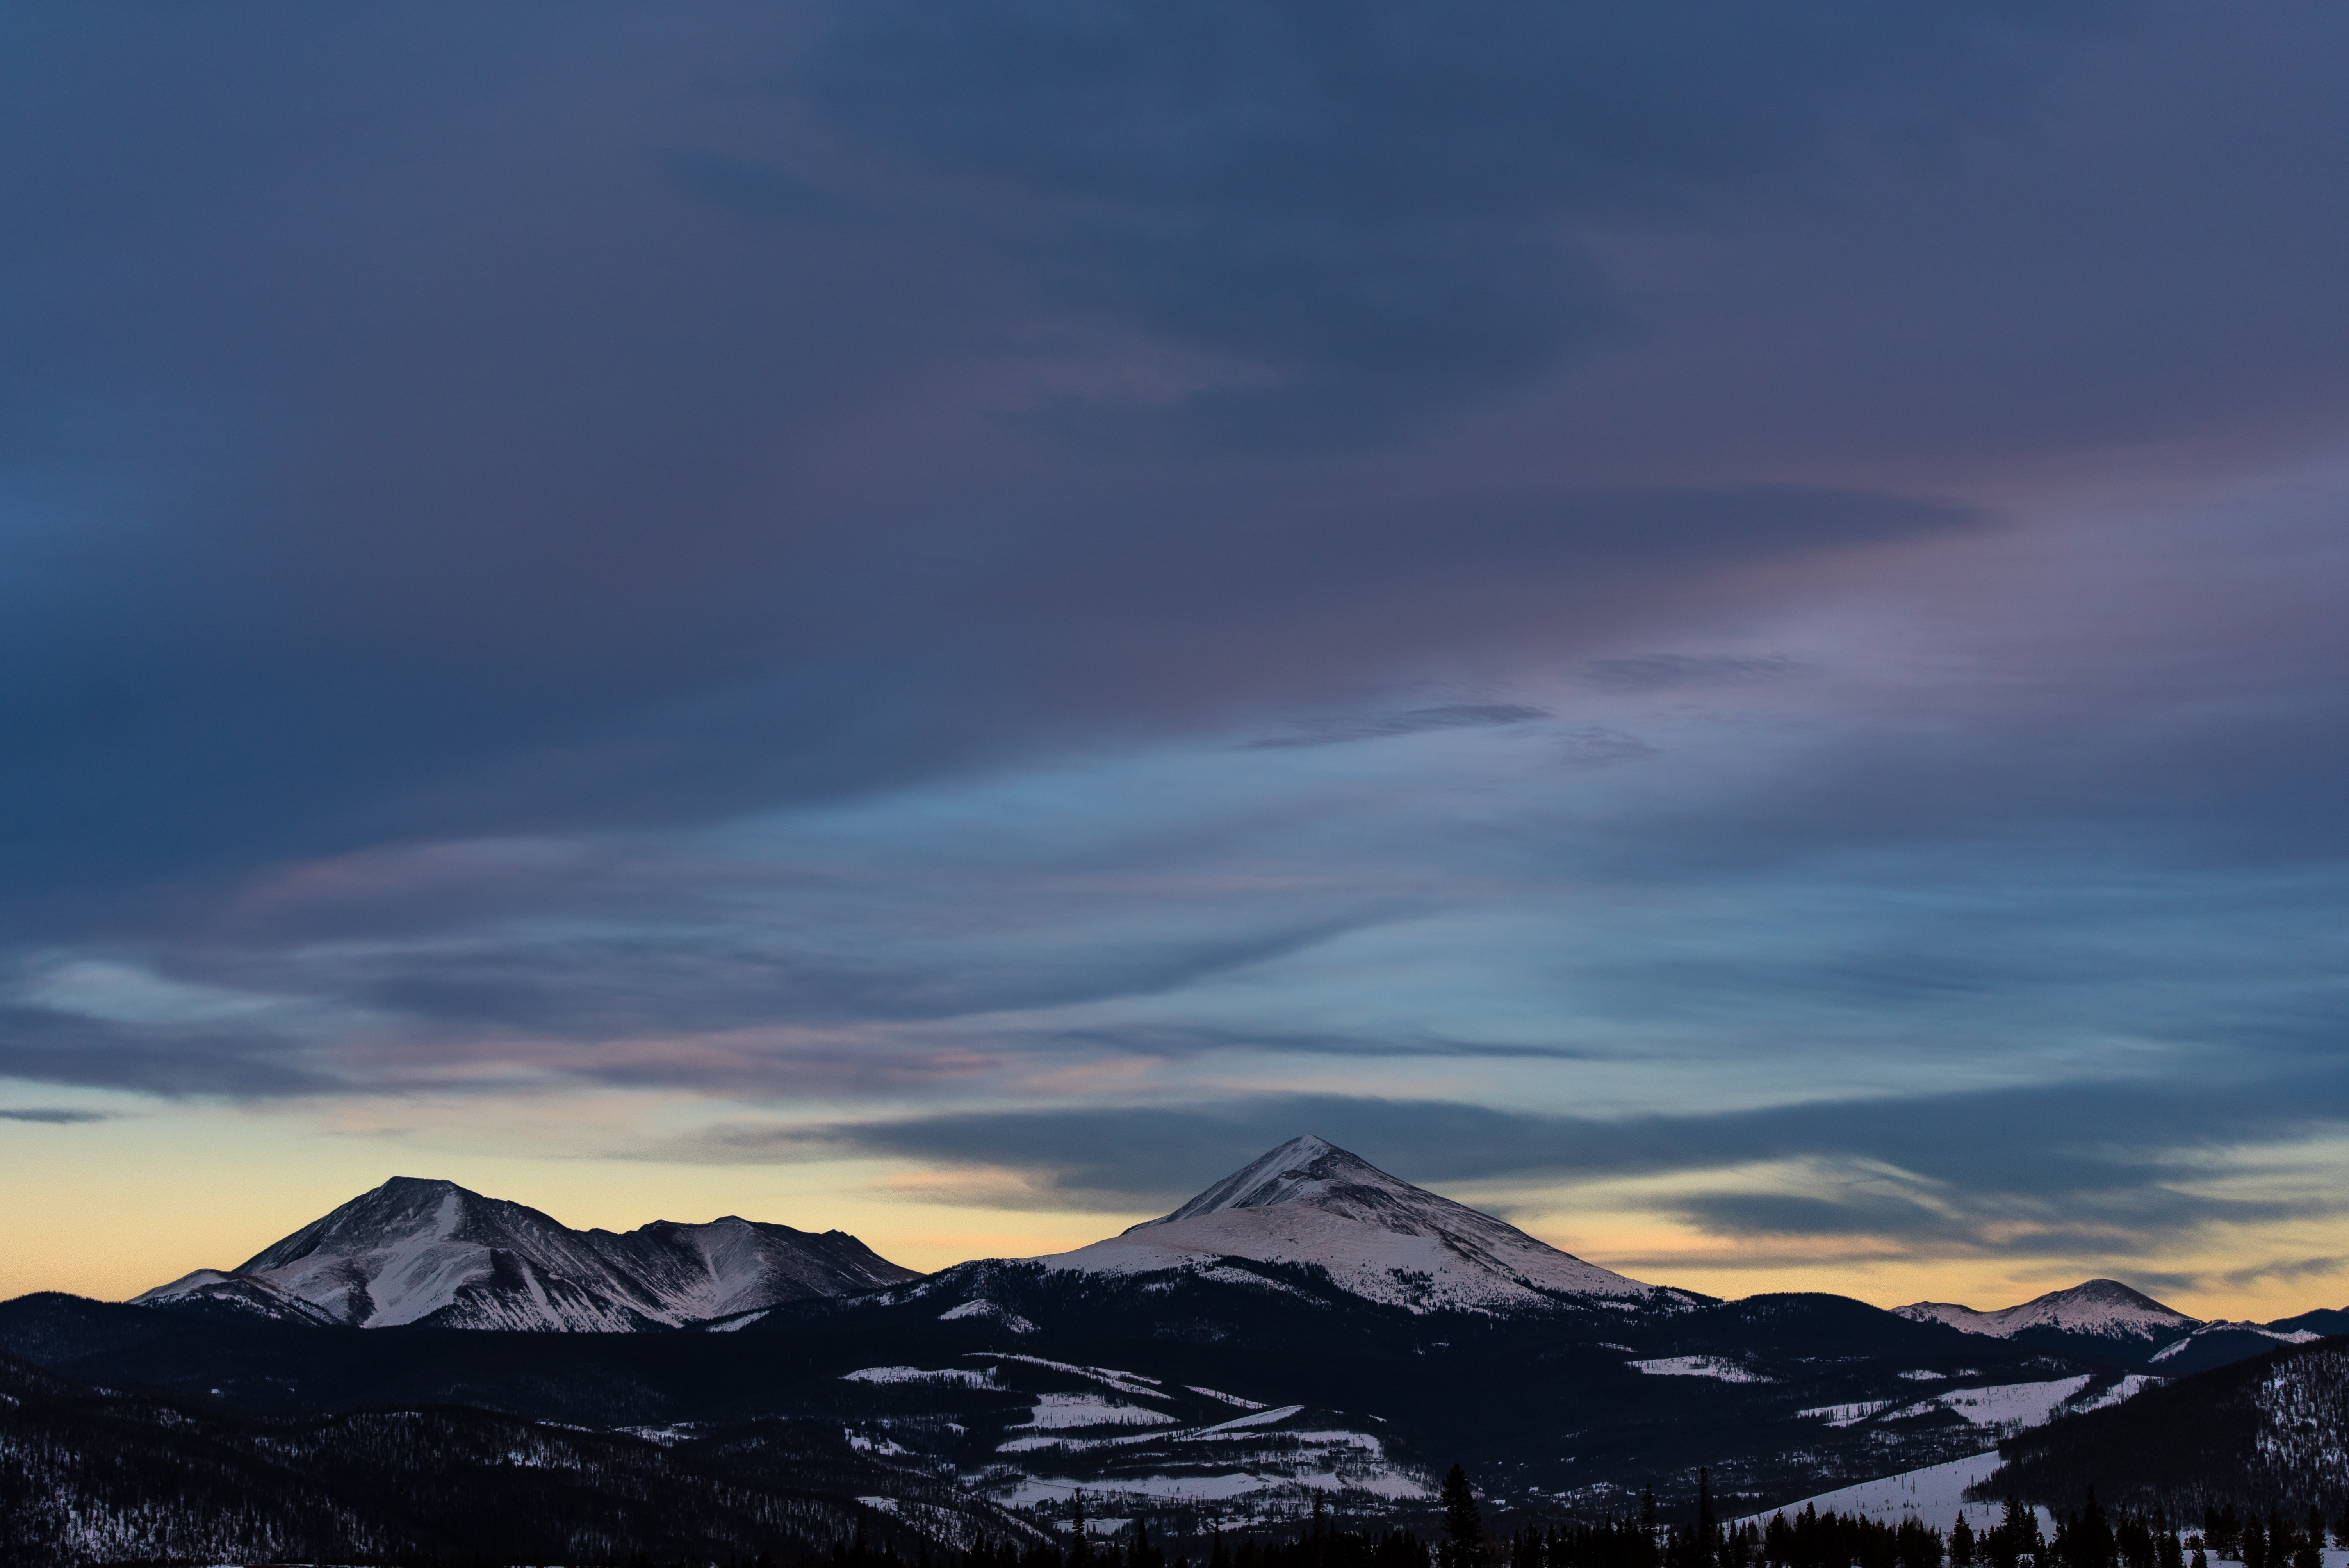 Dark evening clouds over snow-capped mountain peaks in Silverthorne